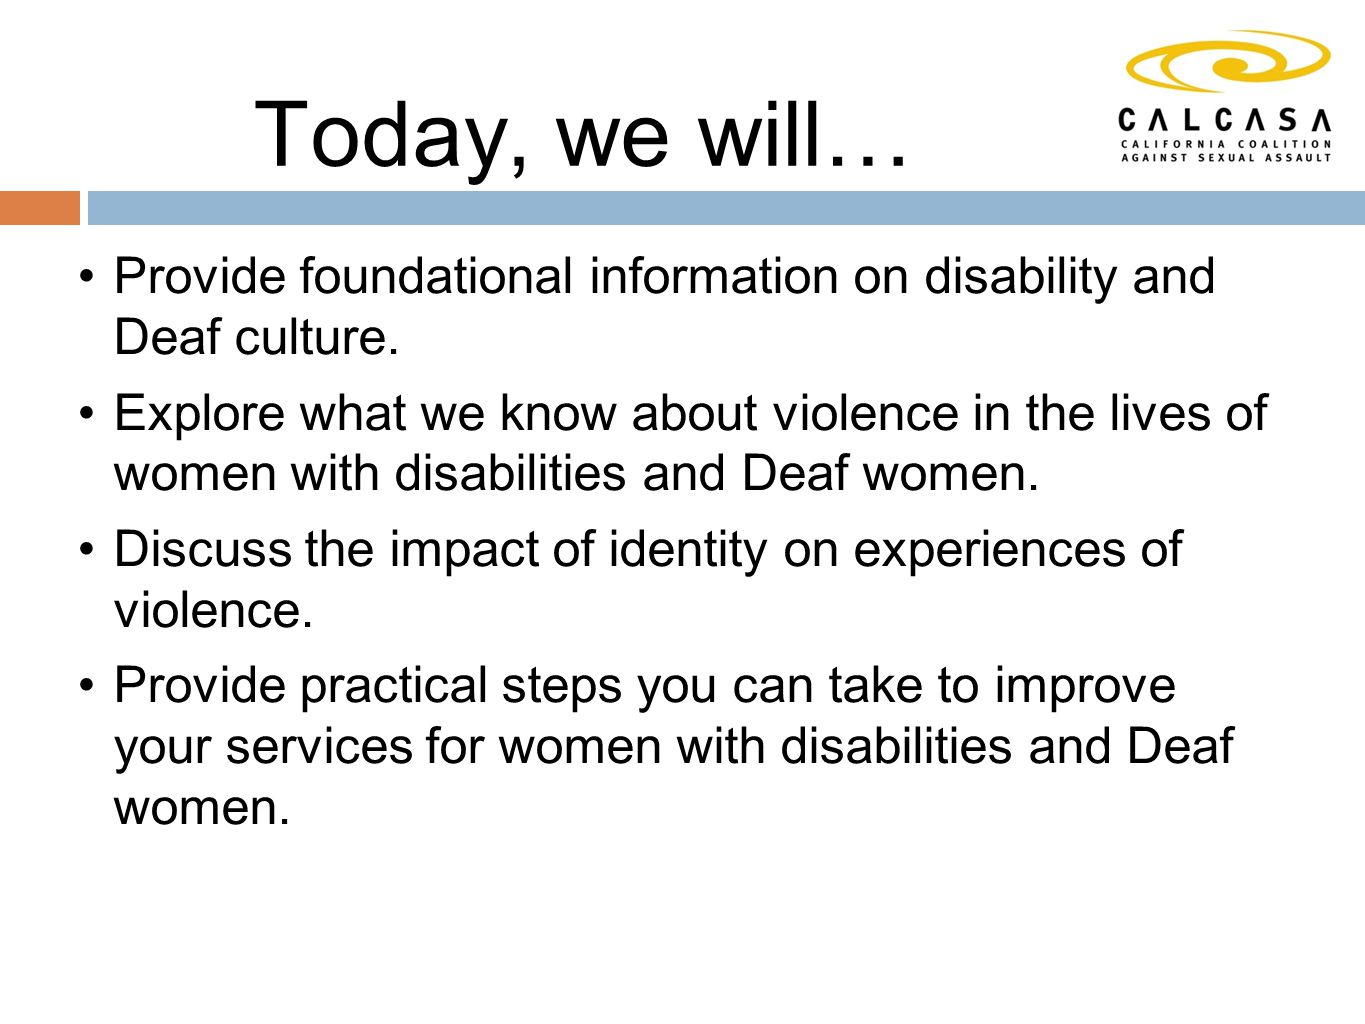 Today, we will… Provide foundational information on disability and Deaf culture.